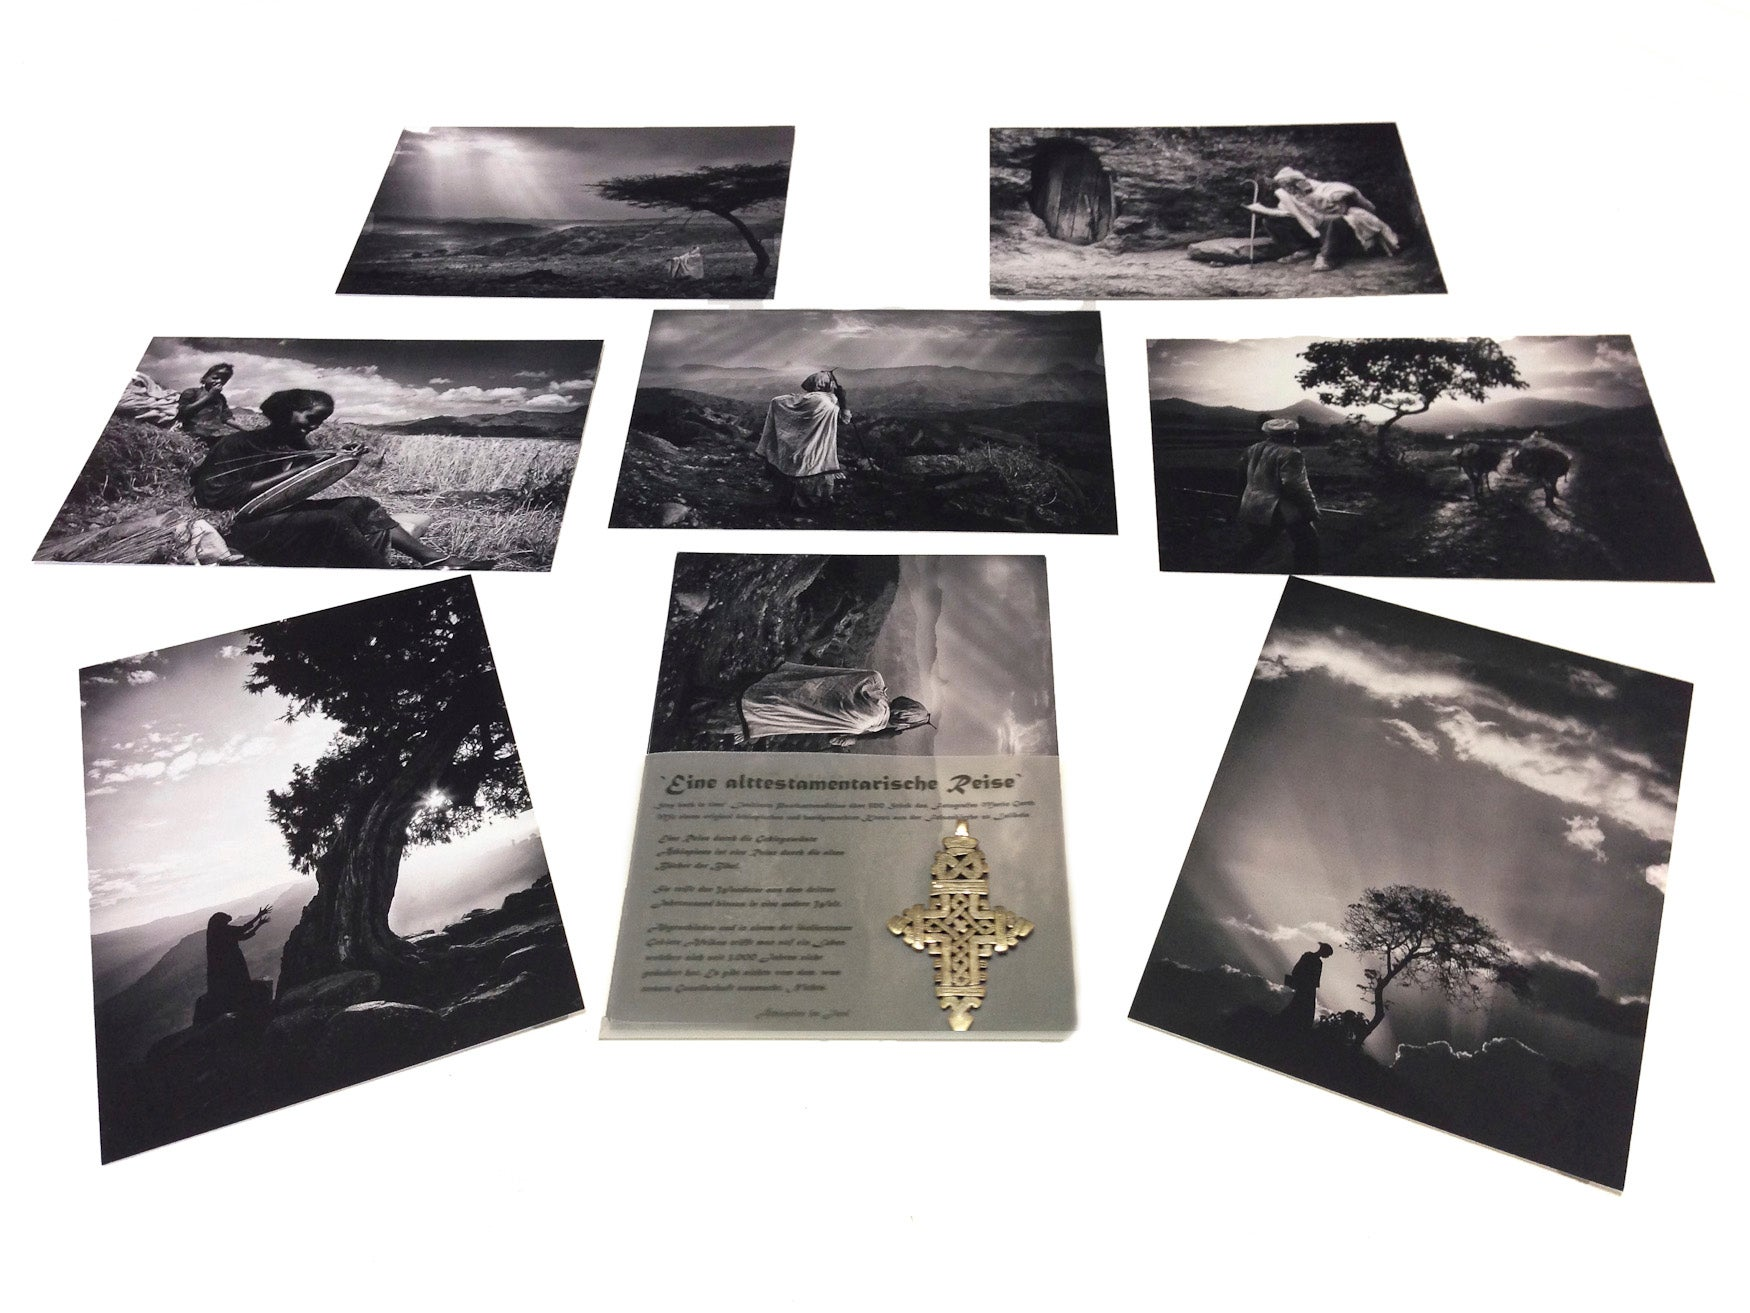 Limited Edition Postcard Set Inc. An Original Handmade Cross